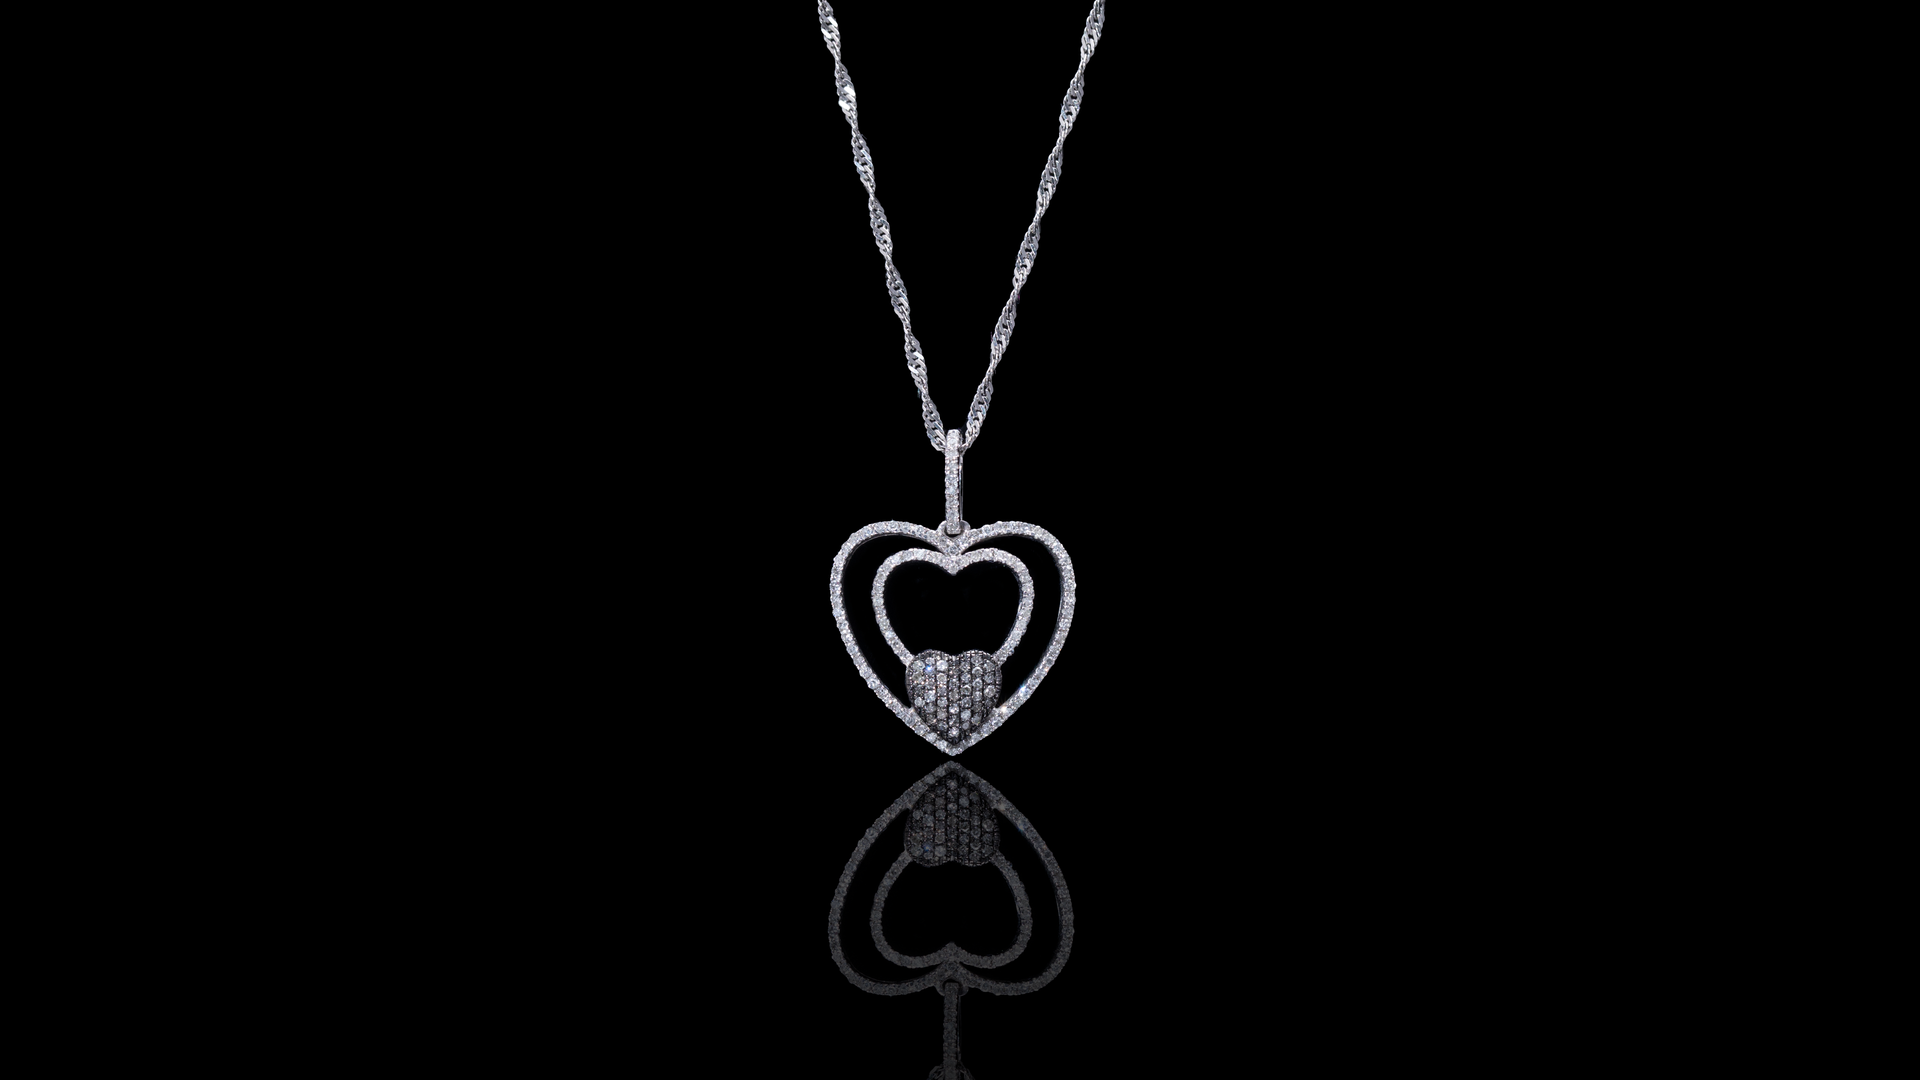 [SPECIAL] 10k White Gold Layered Heart Diamond Necklace